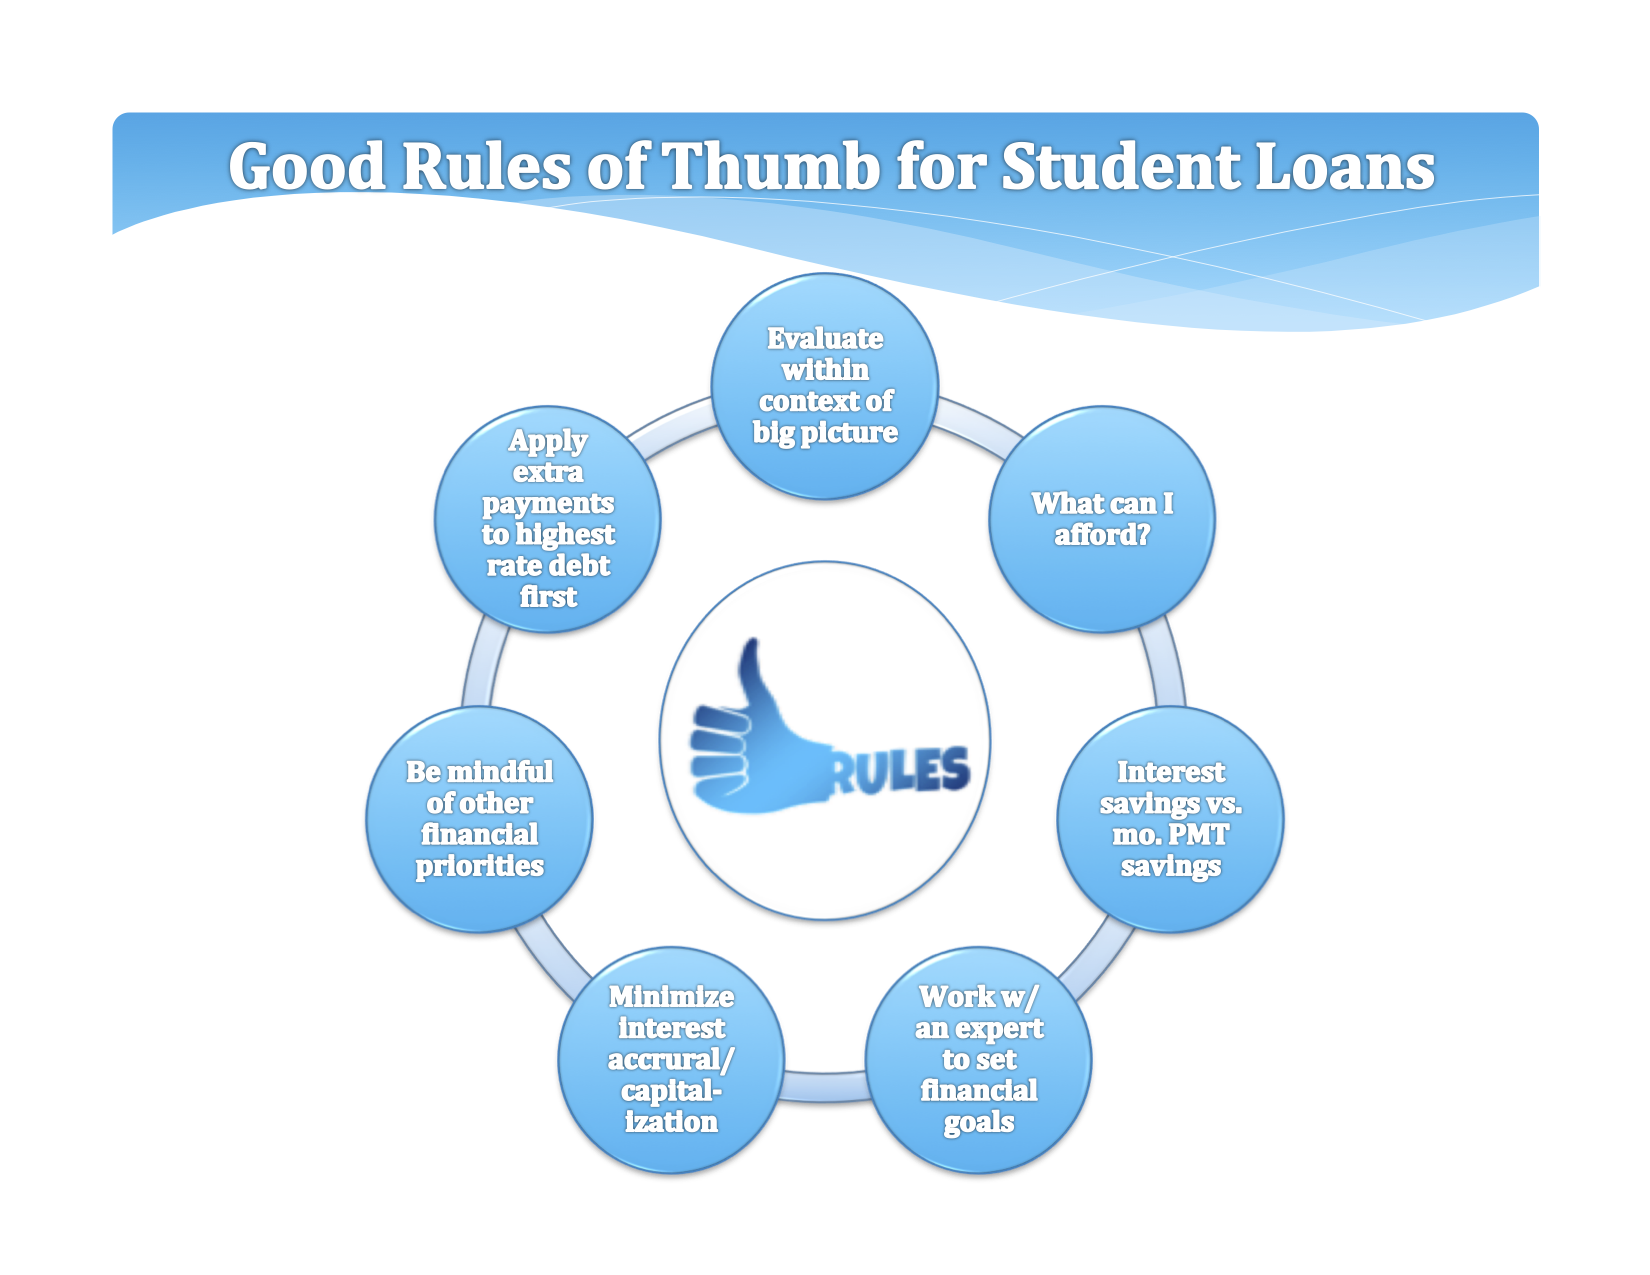 A good financial plan for millennials starts at the foundation, which is solving the riddle that is student debt. After that domino falls the other pieces, like retirement and buying a house, begin to fall in place.